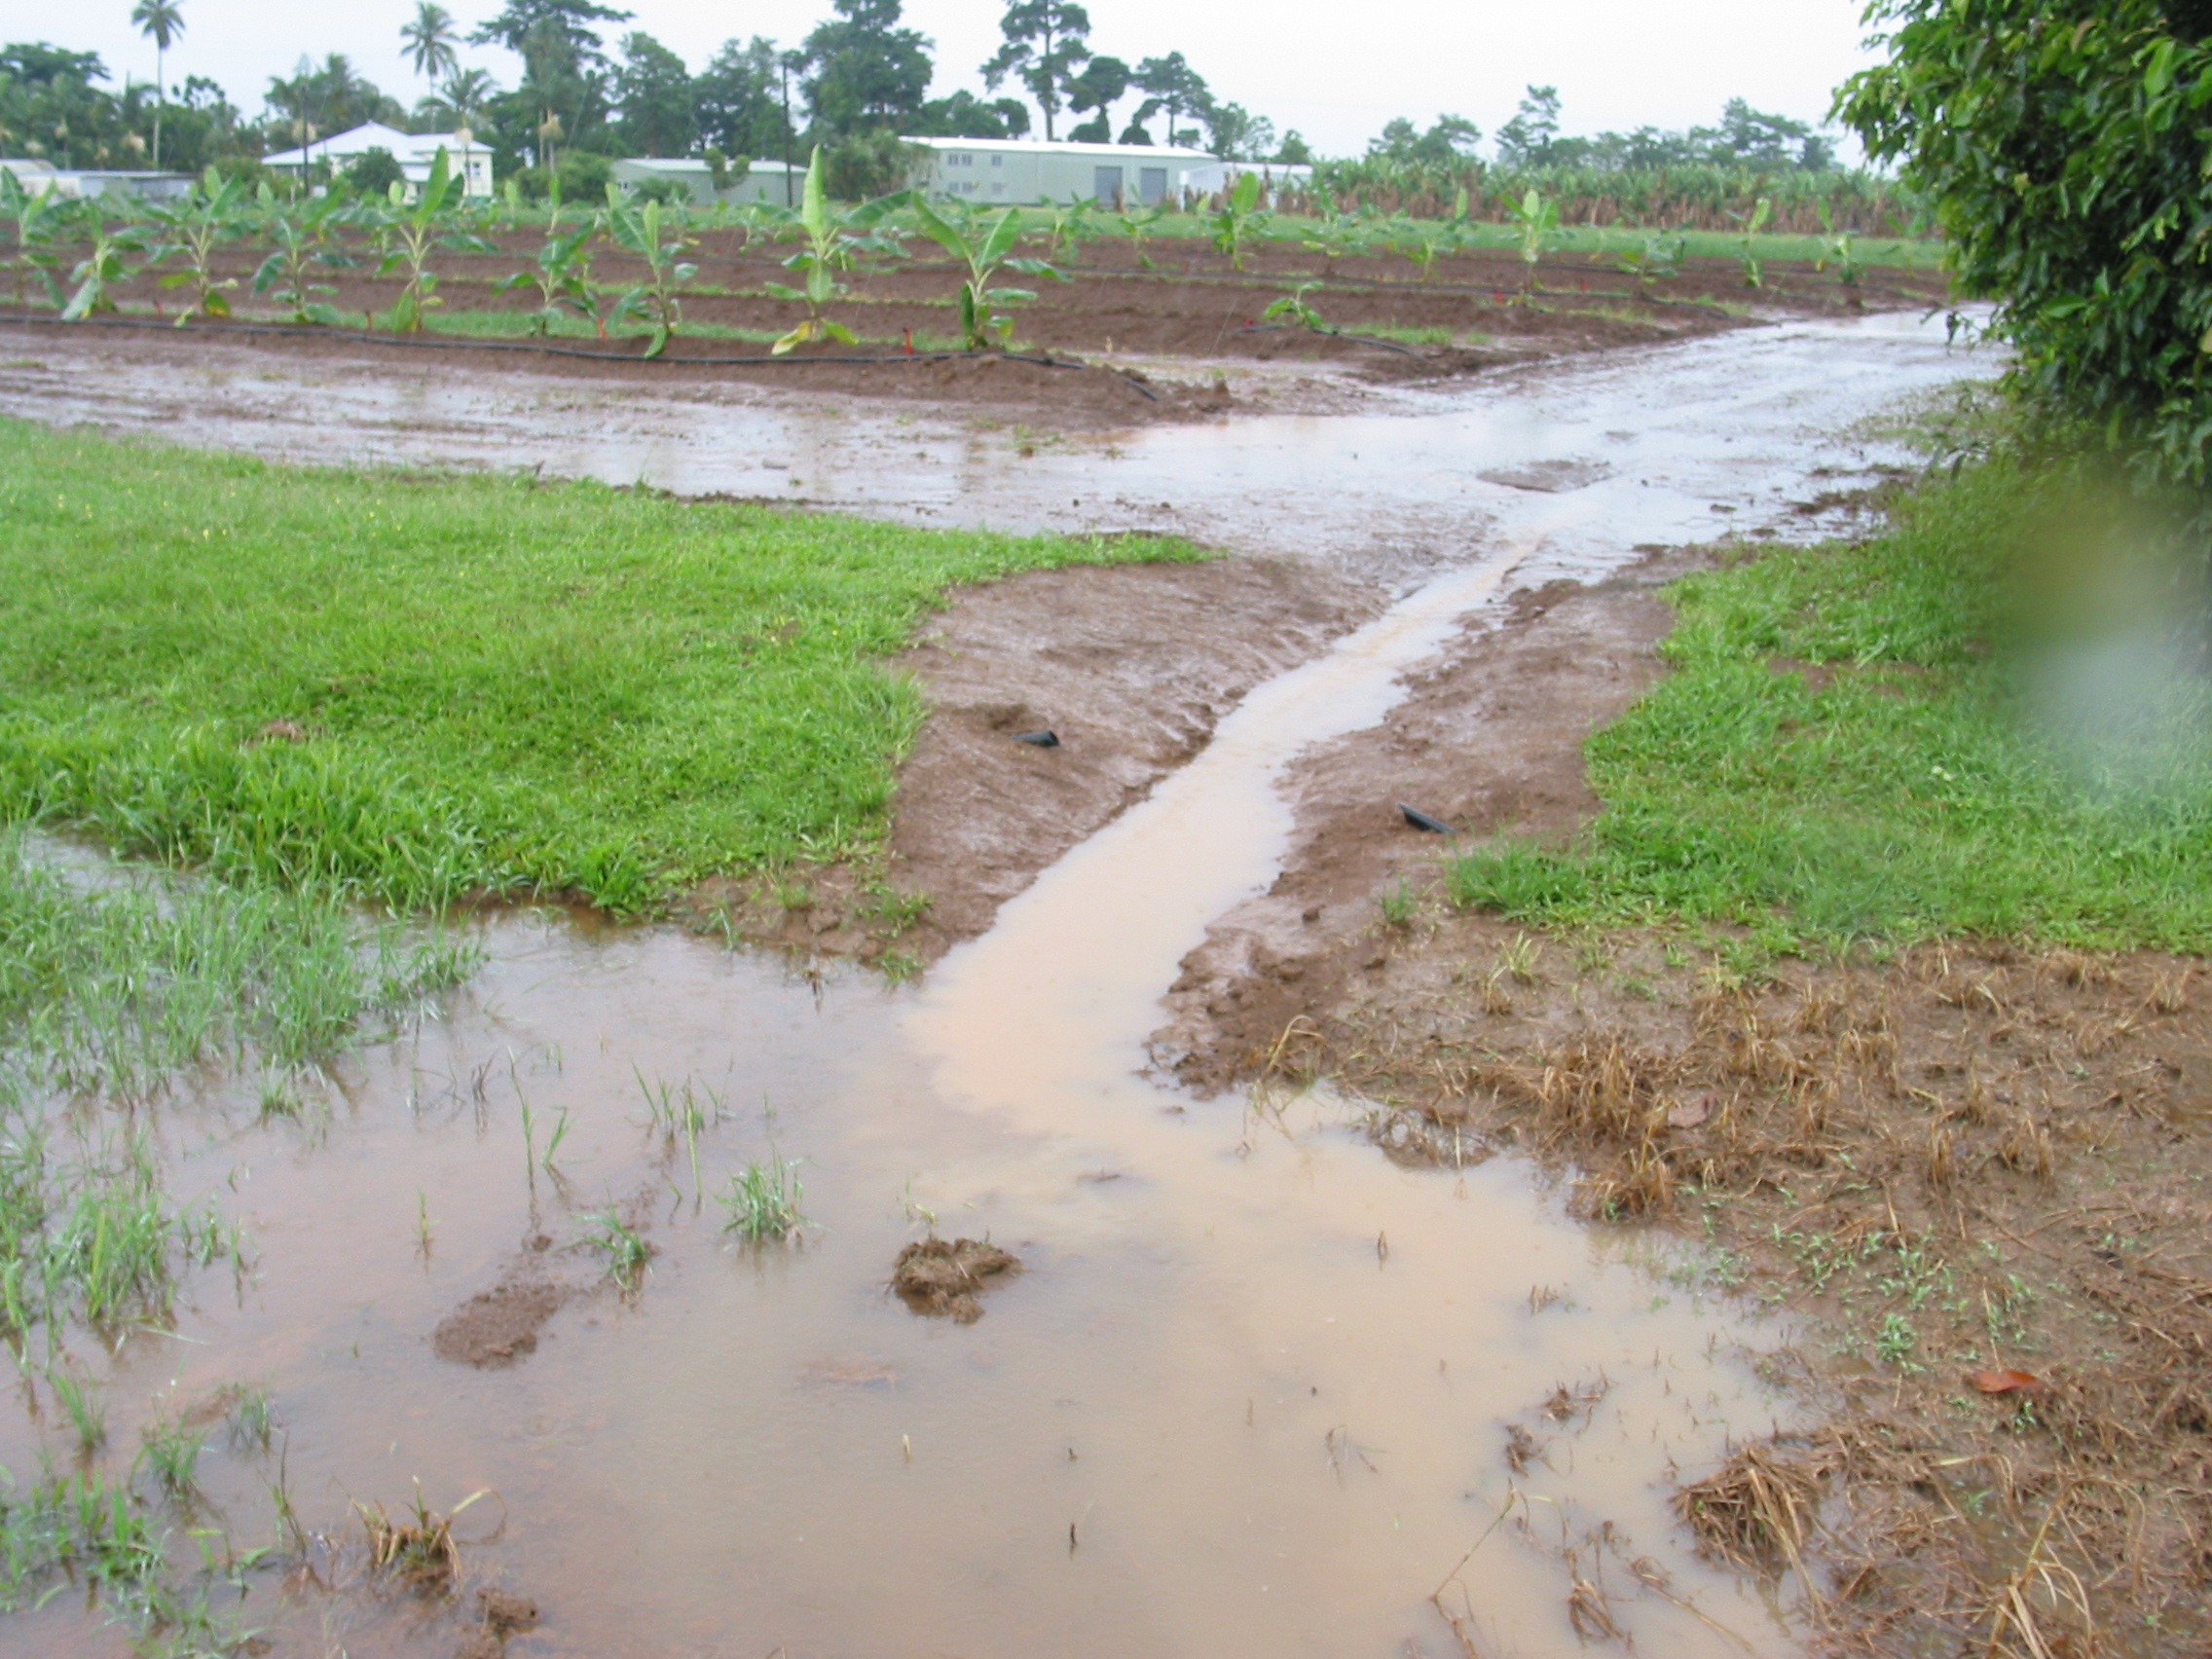 Dirty water leaving bananas with no ground cover after heavy rainfall and mixing with cleaner water from an area with grassed ground cover.